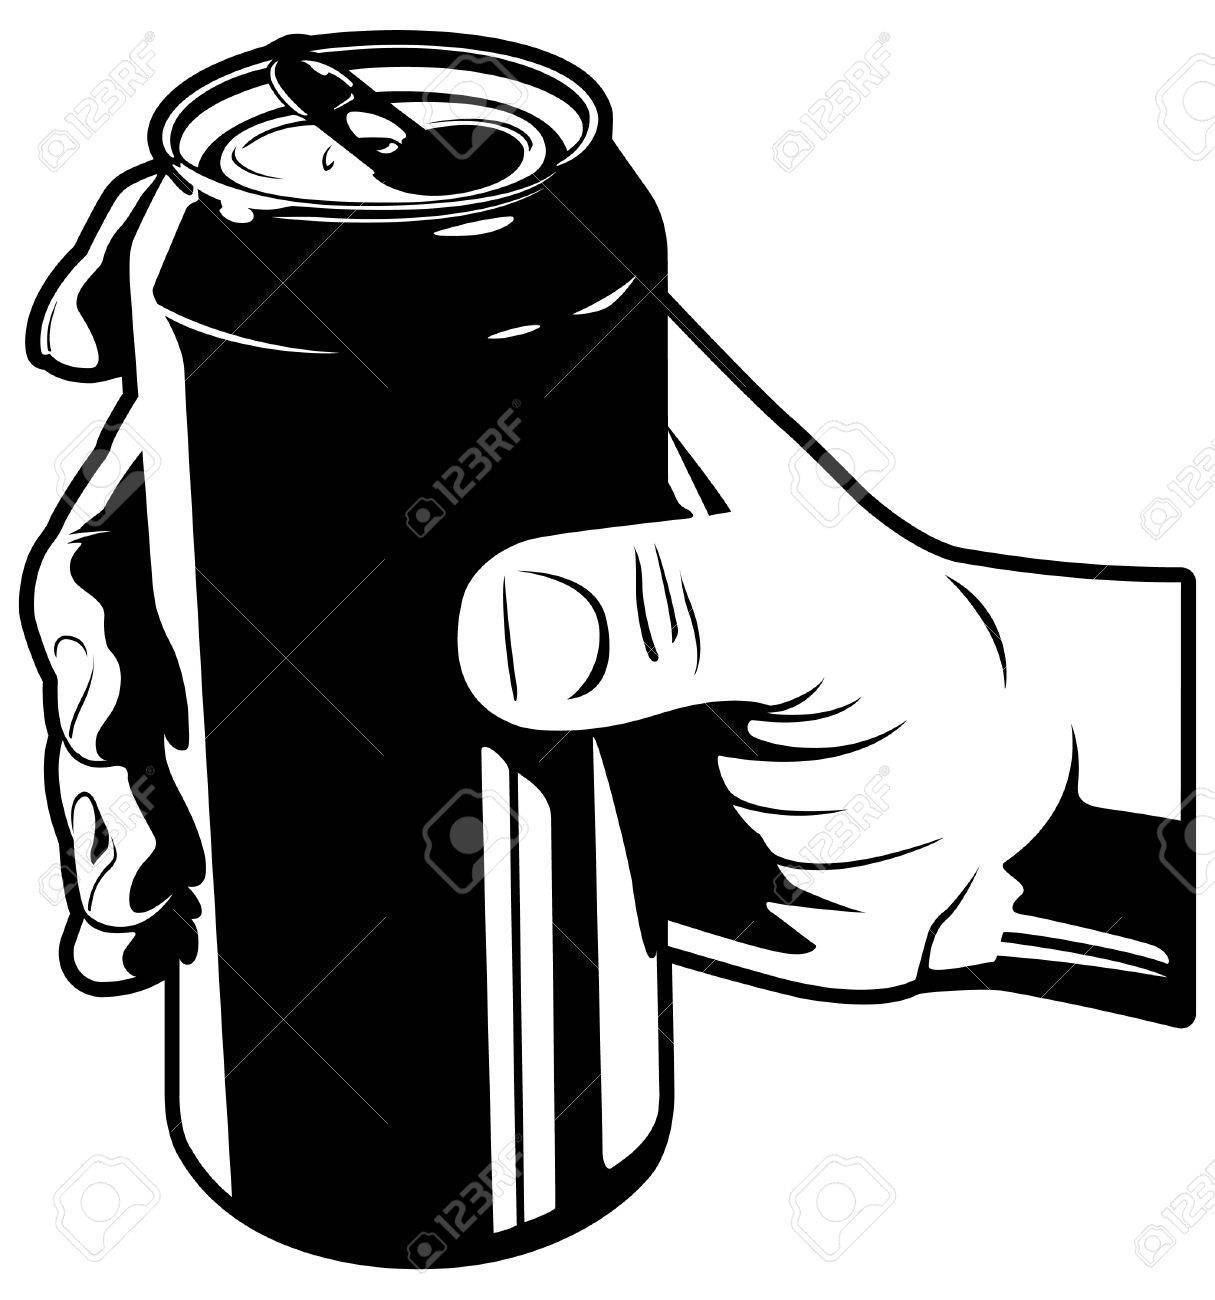 Hand with Soda Can Stock Vector - 12093453